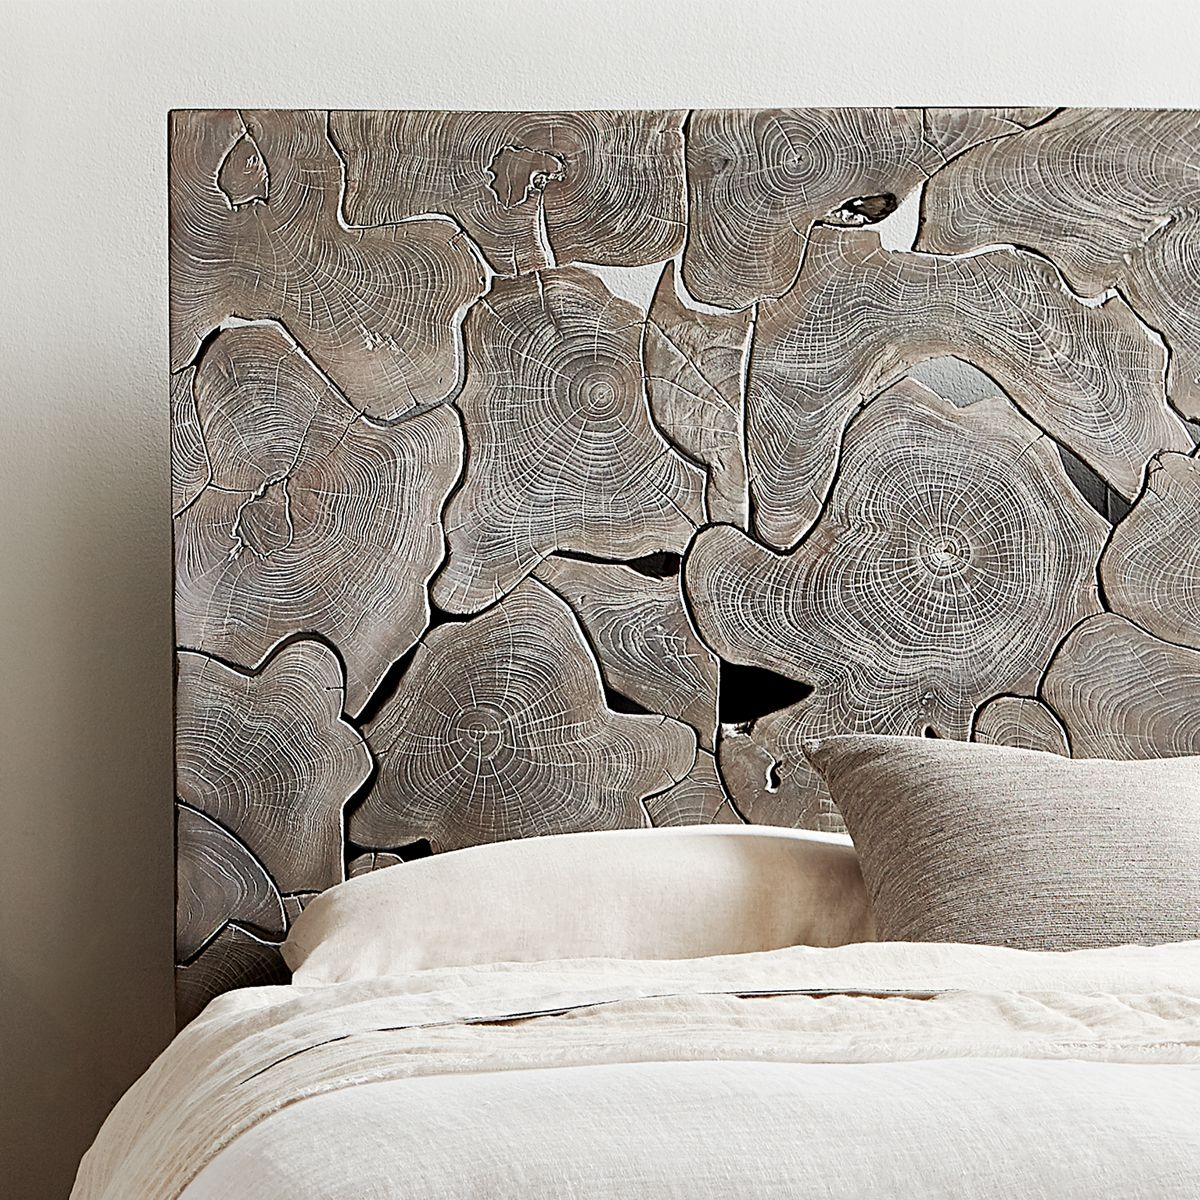 Awe Inspiring Calaveras Headboard Hand Fitted Natural Edges Reclaimed Interior Design Ideas Clesiryabchikinfo